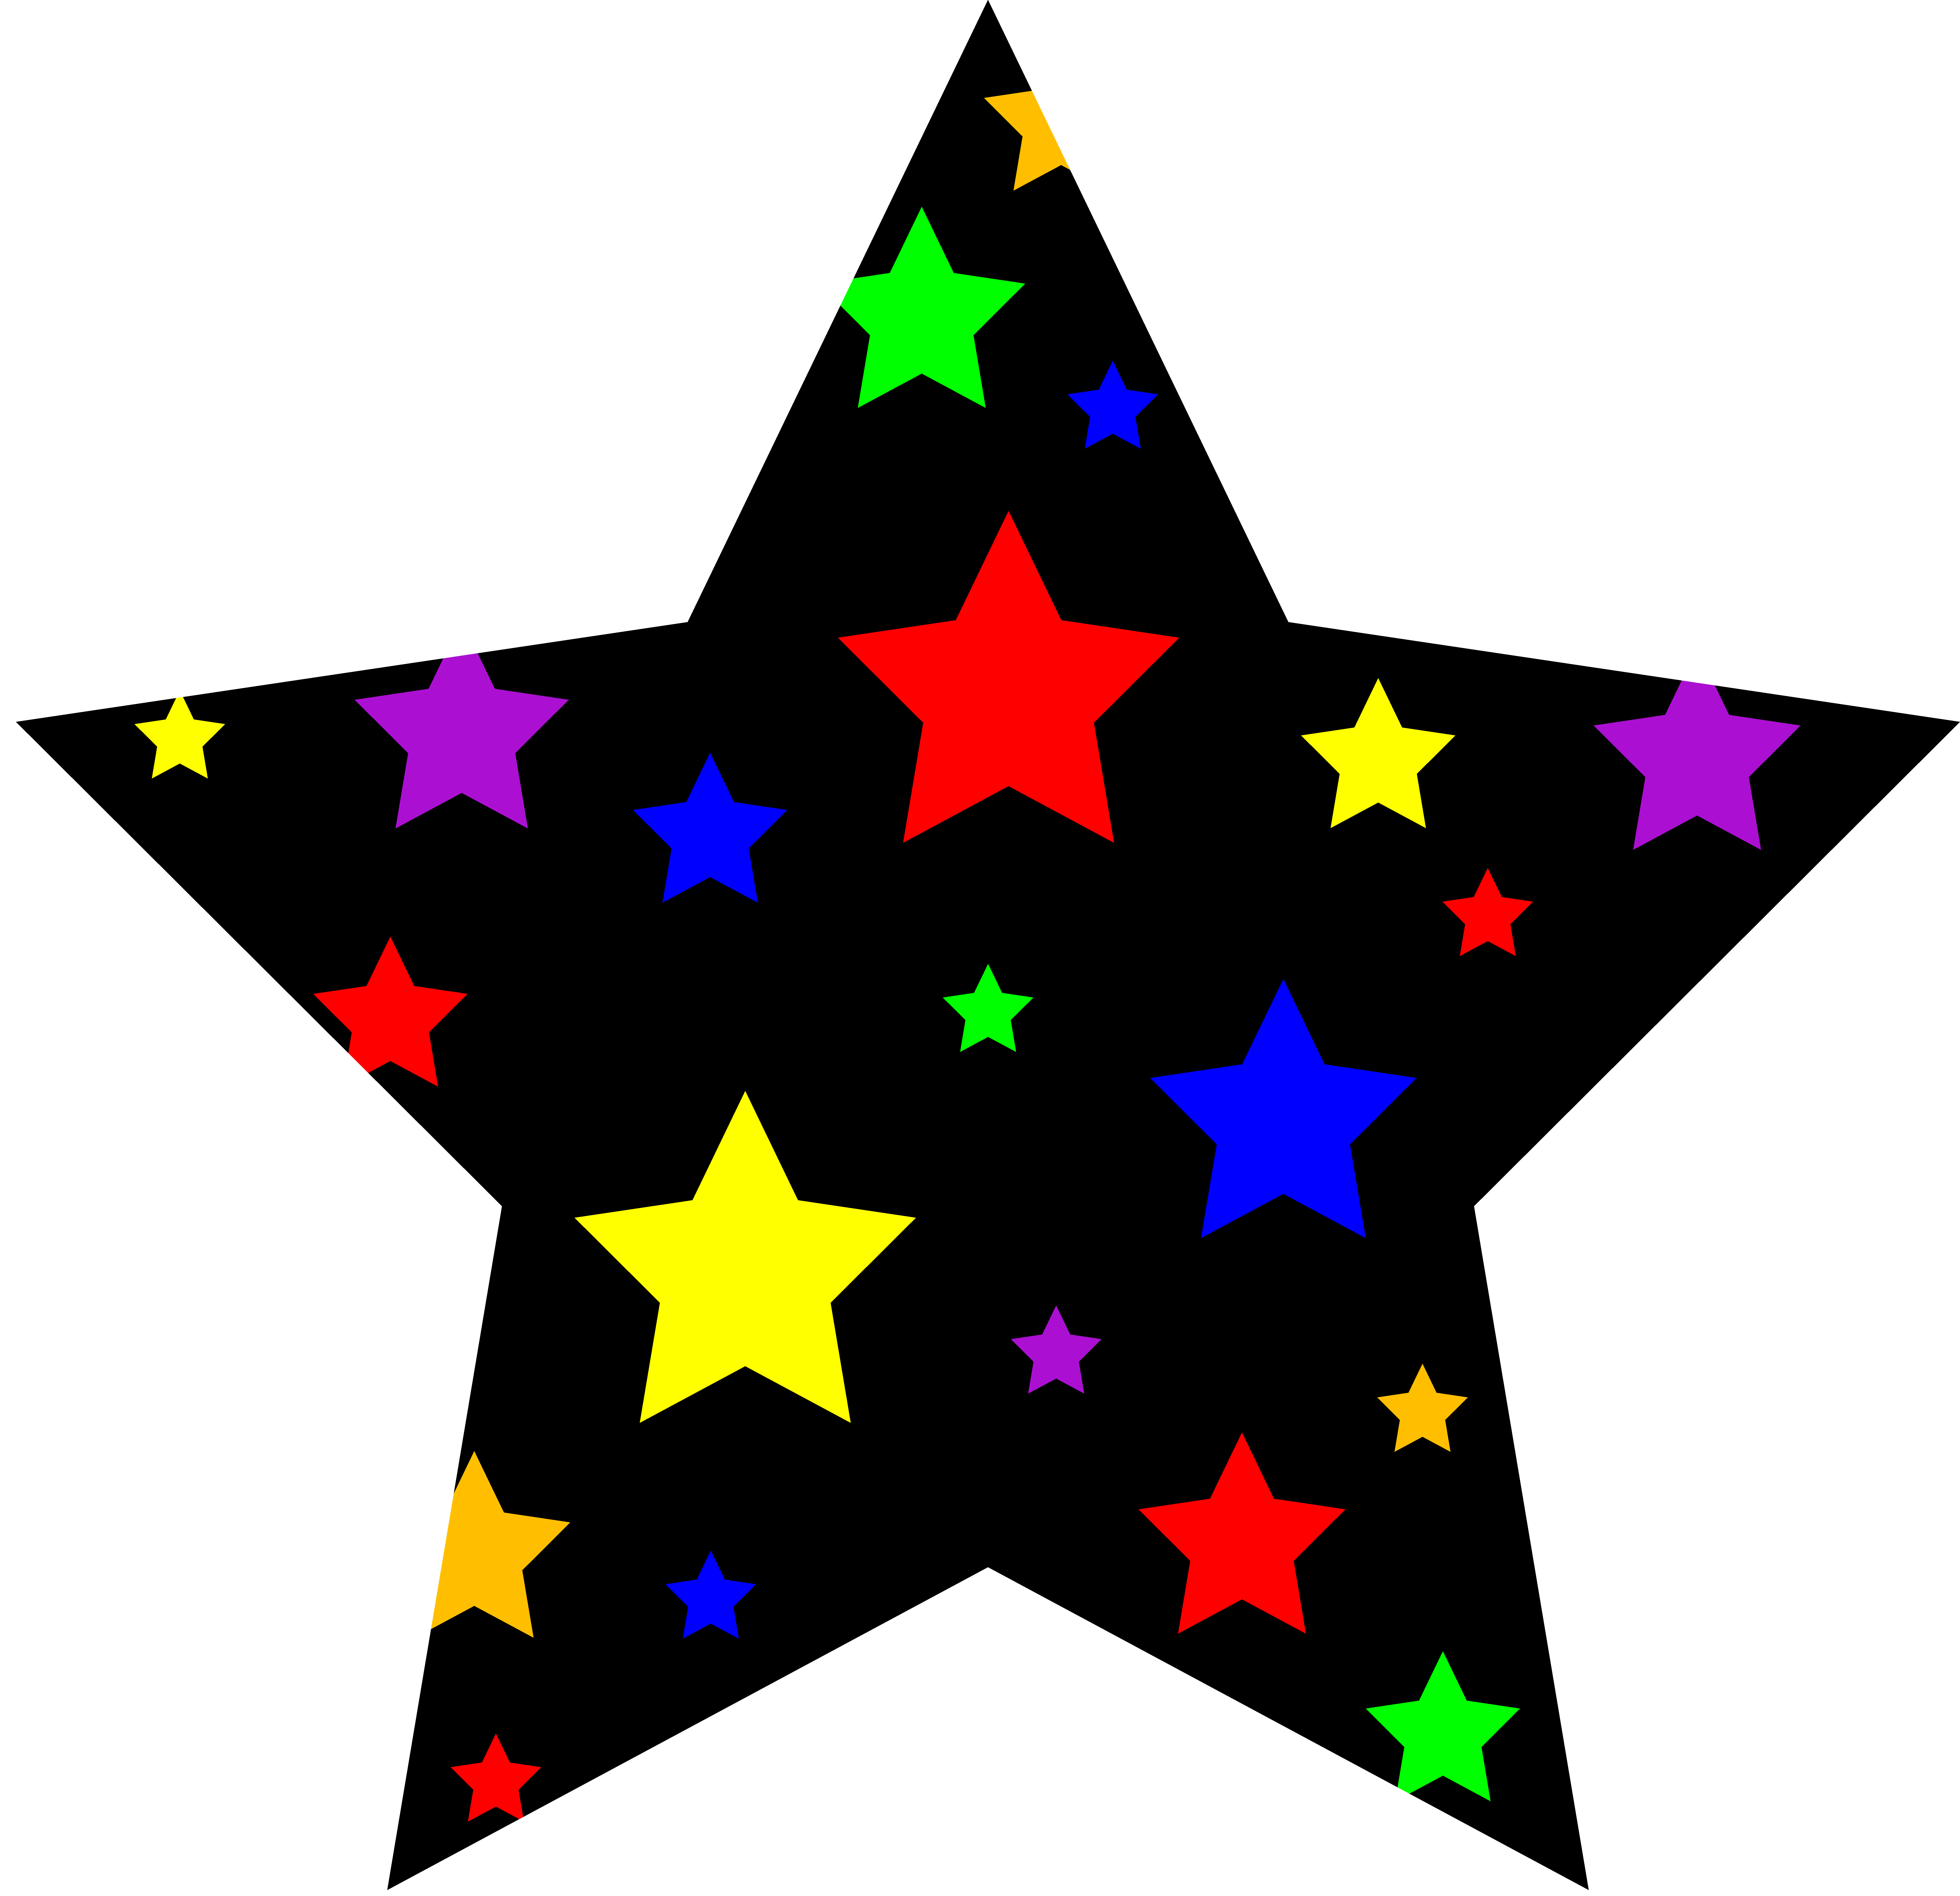 Images Of Star - ClipArt Best - 361.6KB